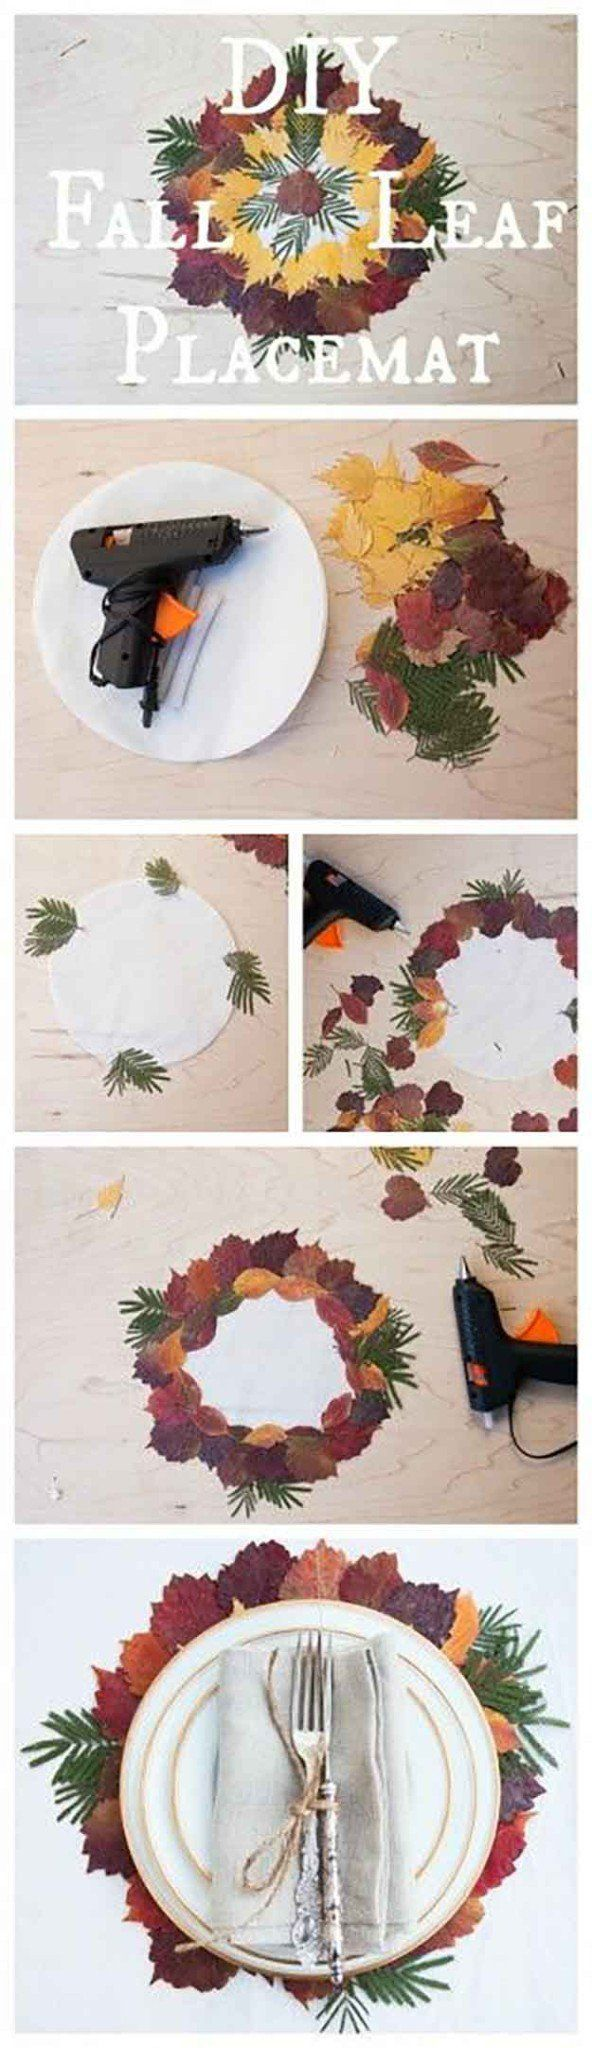 DIY Placemat With Actual Fall Leaves | 14 DIY Placemats for Thanksgiving, check it out at http://diyready.com/homemade-thanksgiving-decorations-14-diy-placemat-ideas